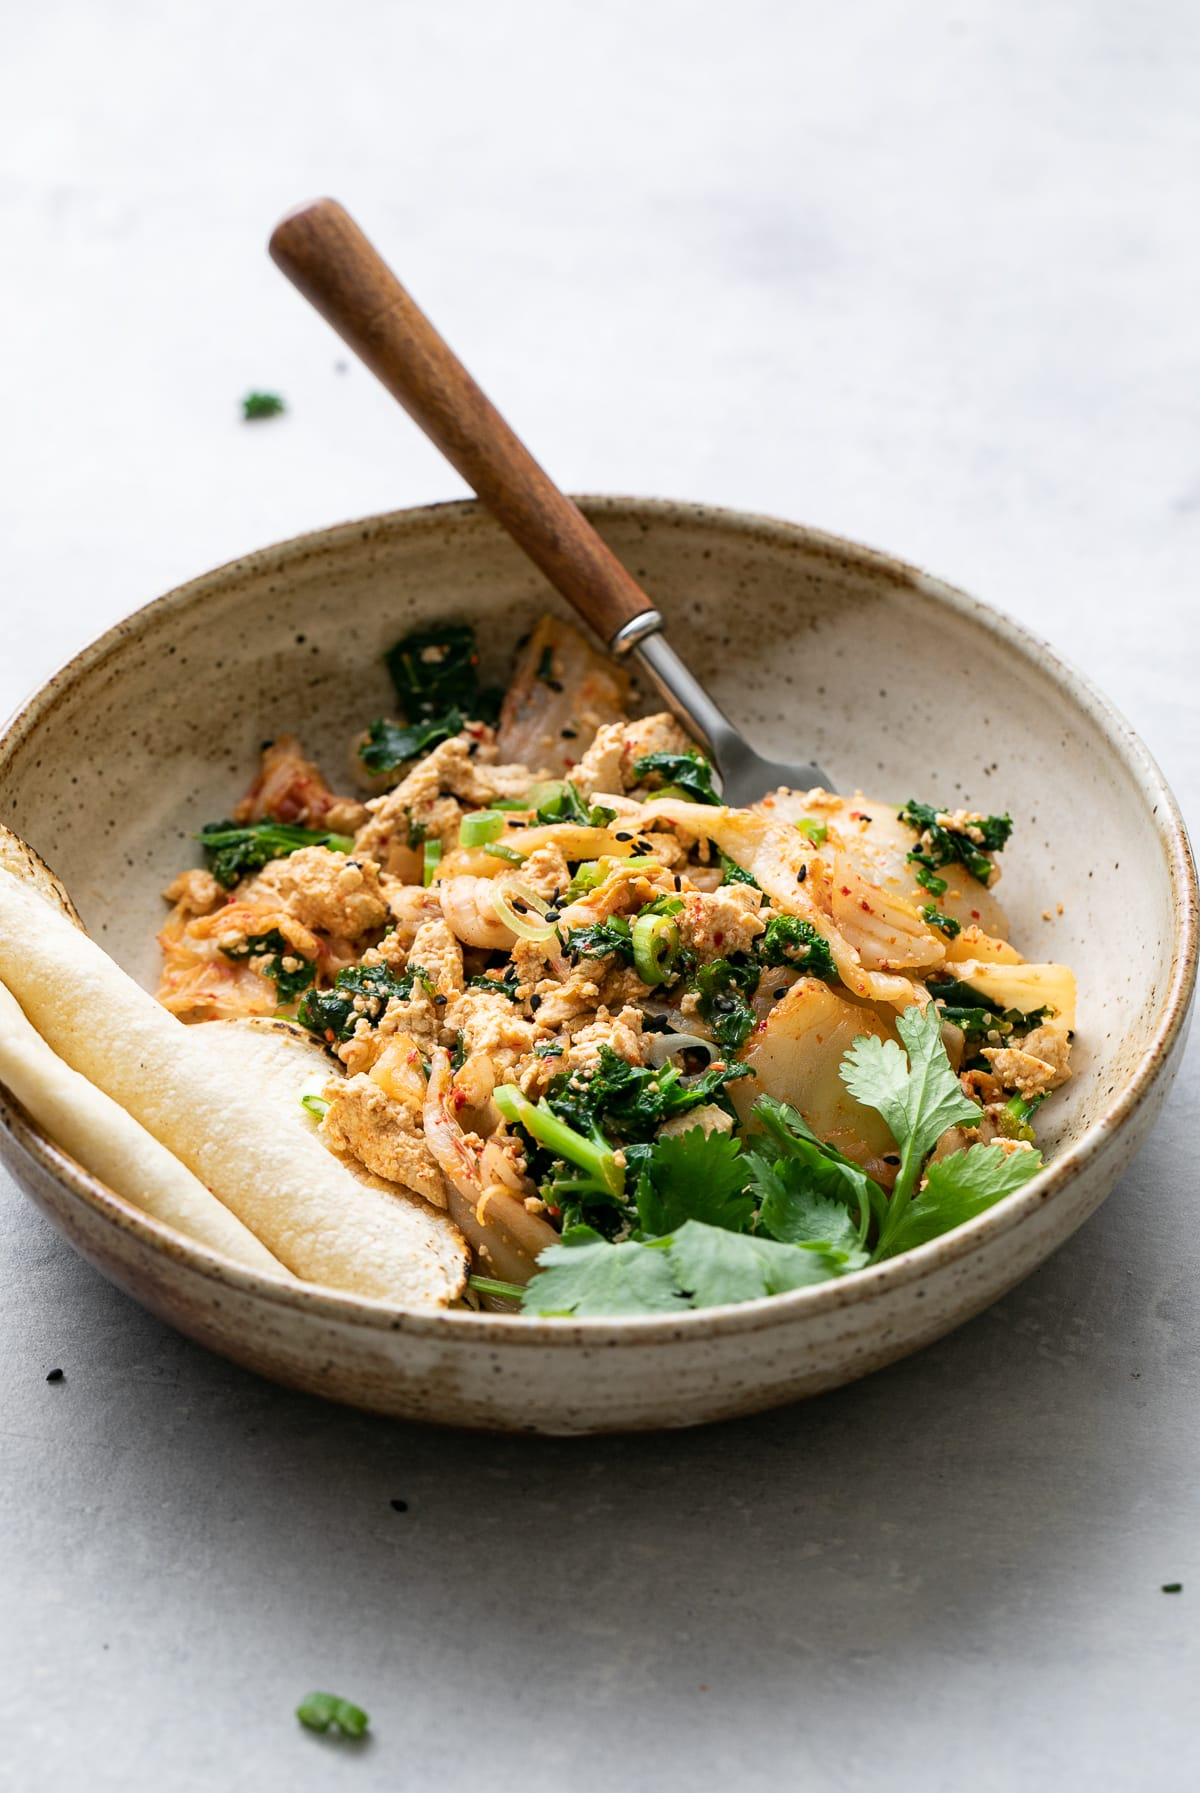 side angle view of bowl with serving of kimchi tofu scramble with fork.